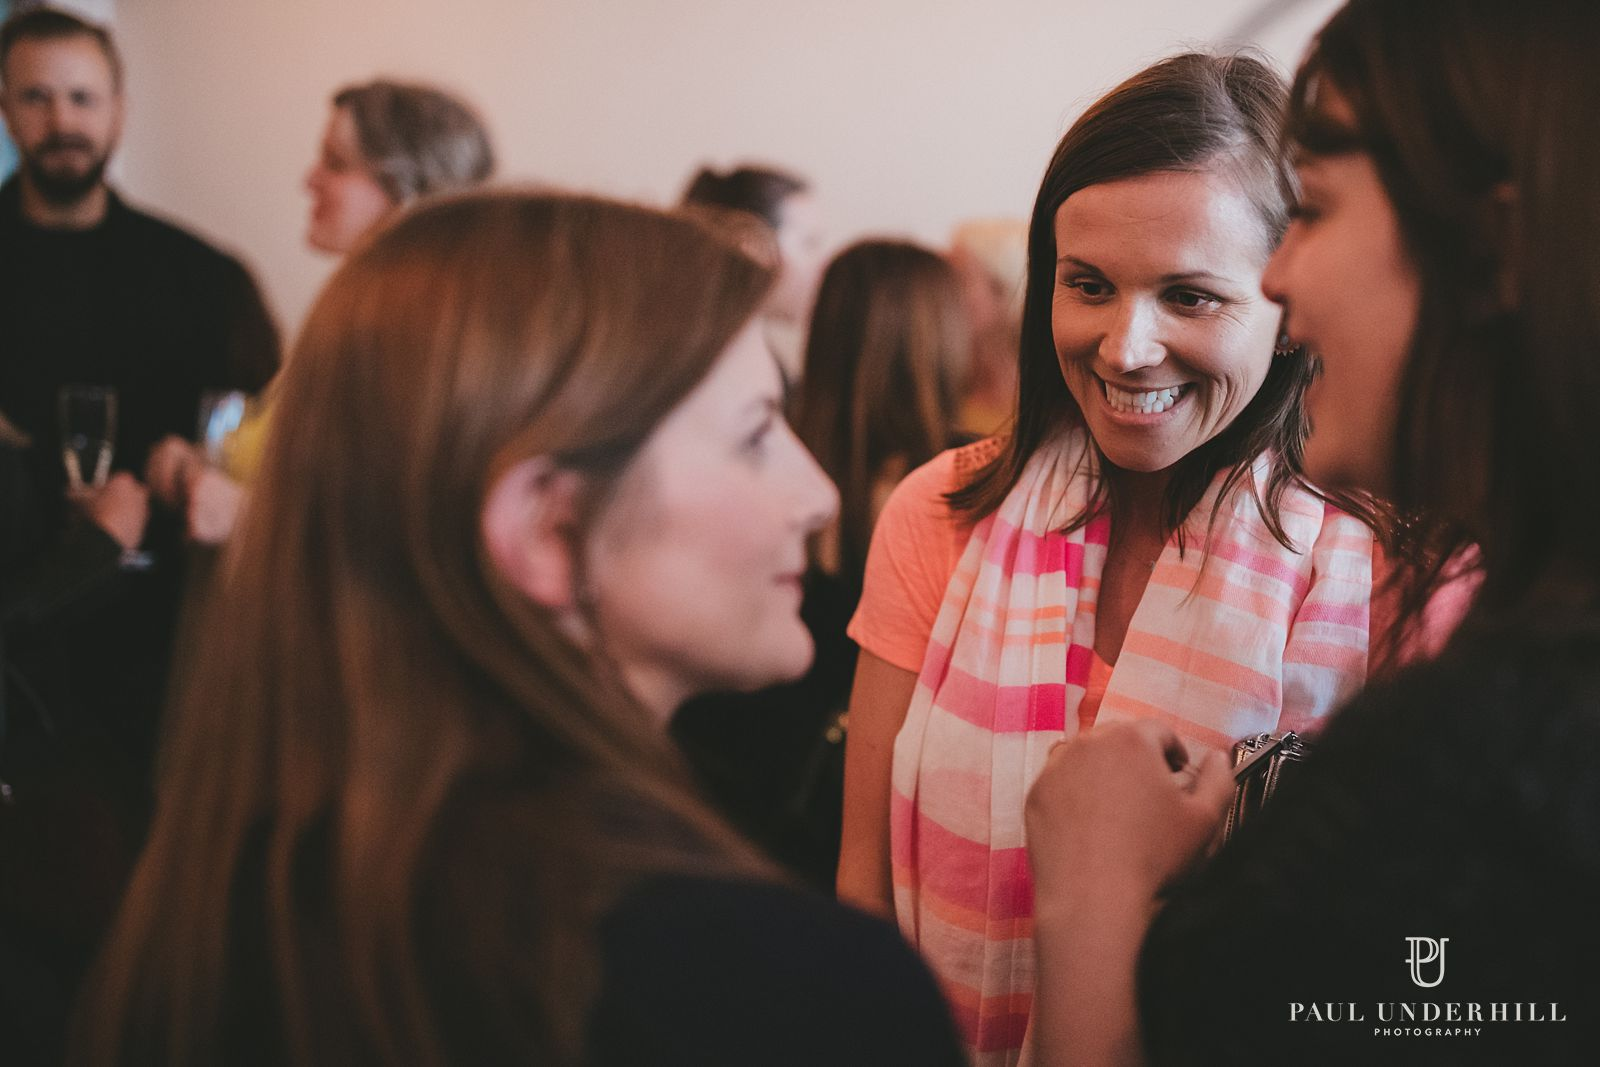 Documentary photography launch event